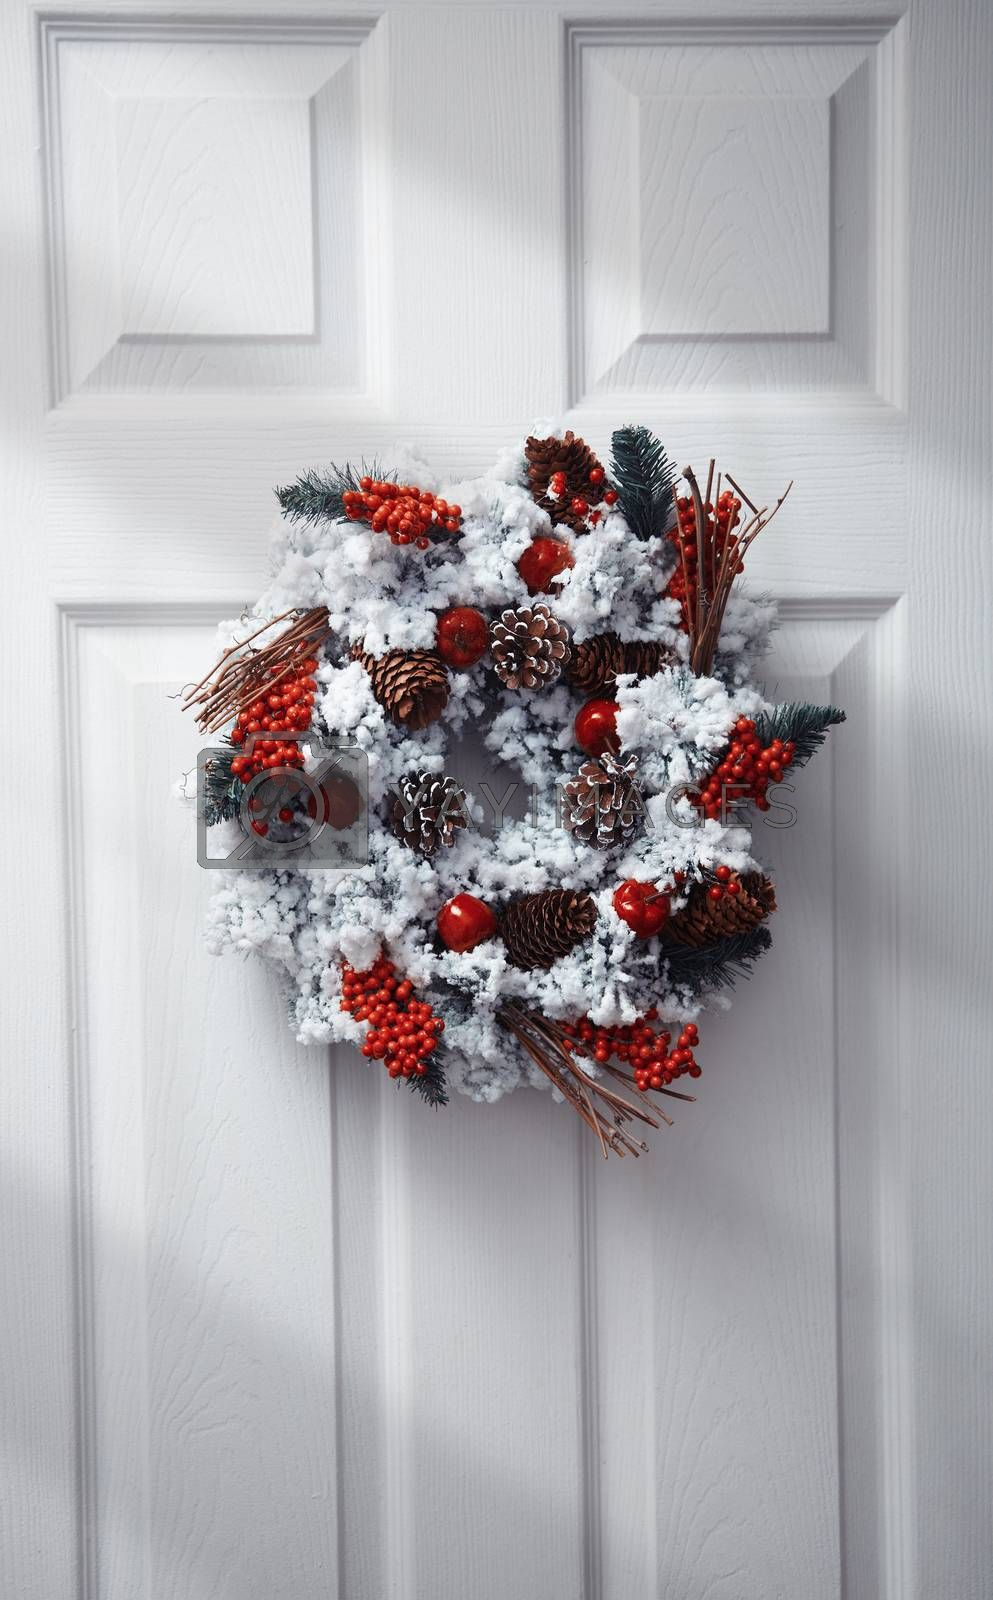 White front door decorated by Christmas wreath. Vertical photo